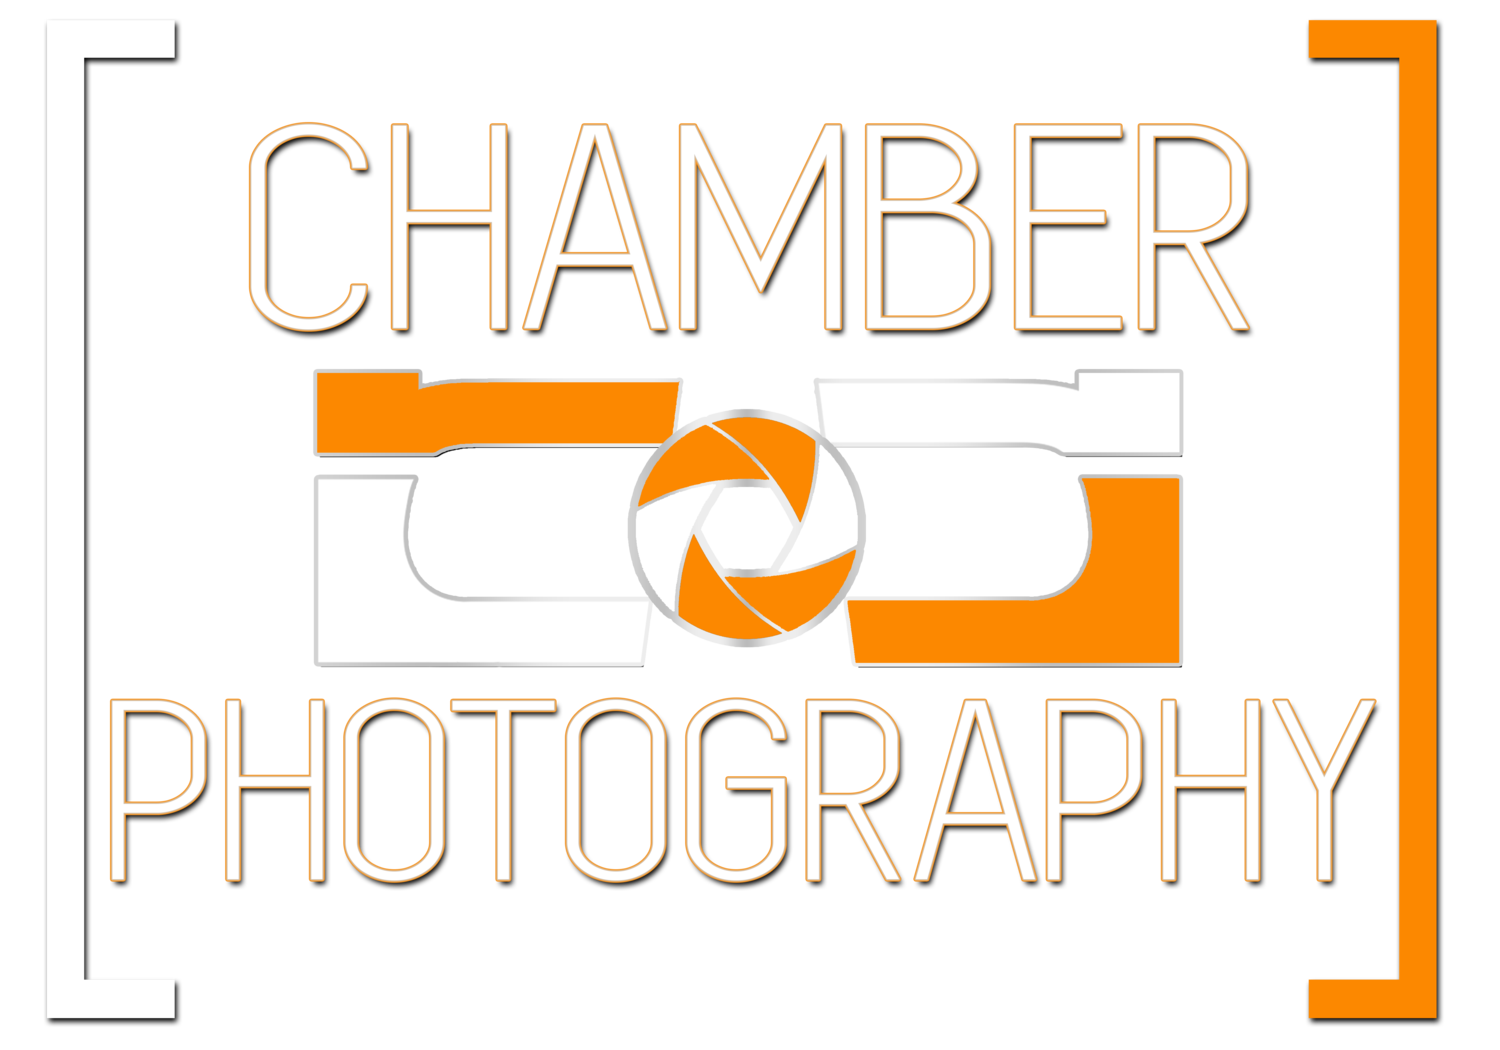 Chamber Photography Moments | Central Florida Photographer